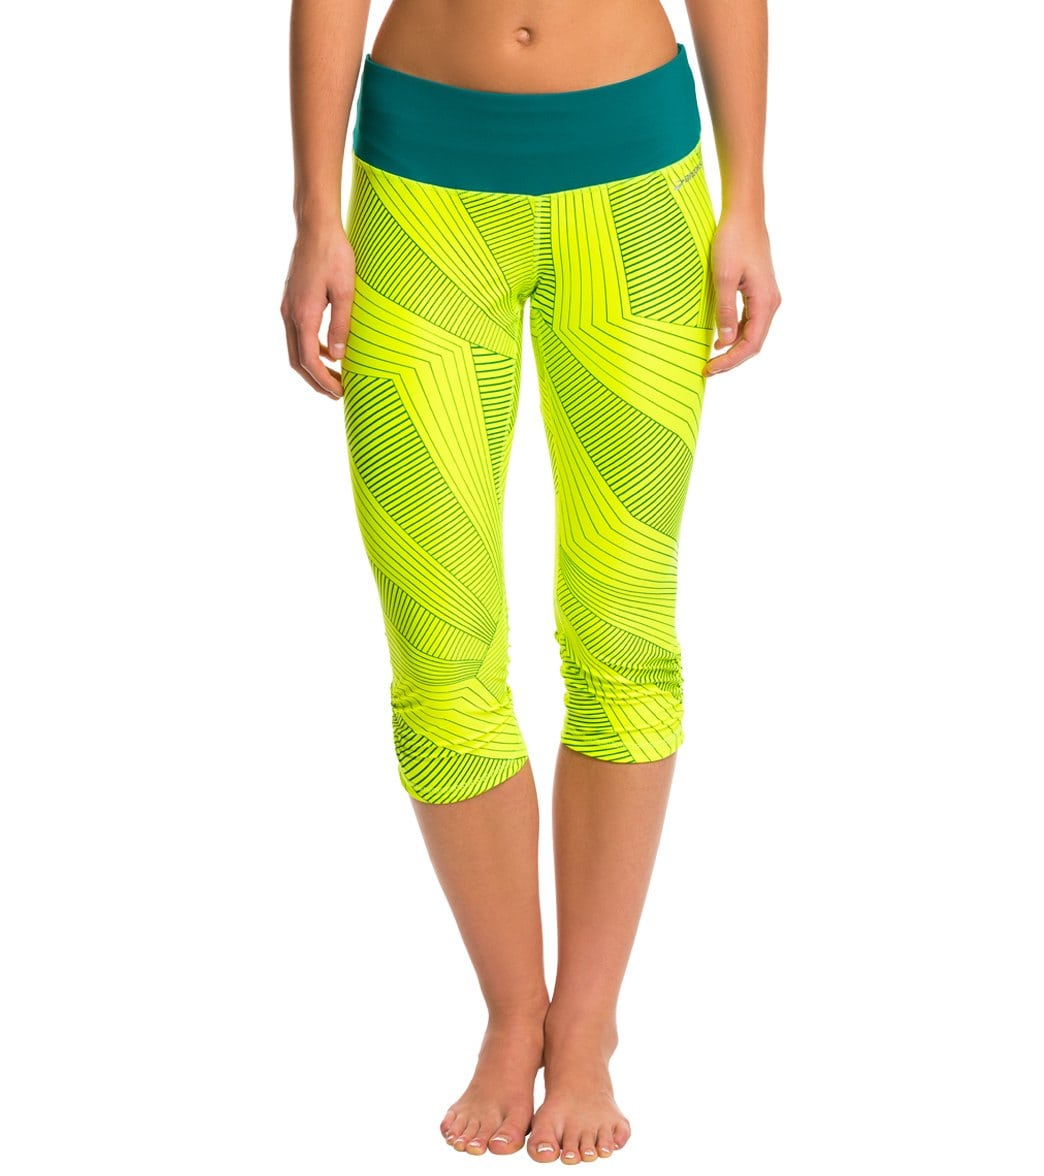 f4b6fa8a0fd53 Brooks Women's Greenlight Reversible Printed Capri SE at SwimOutlet.com -  Free Shipping